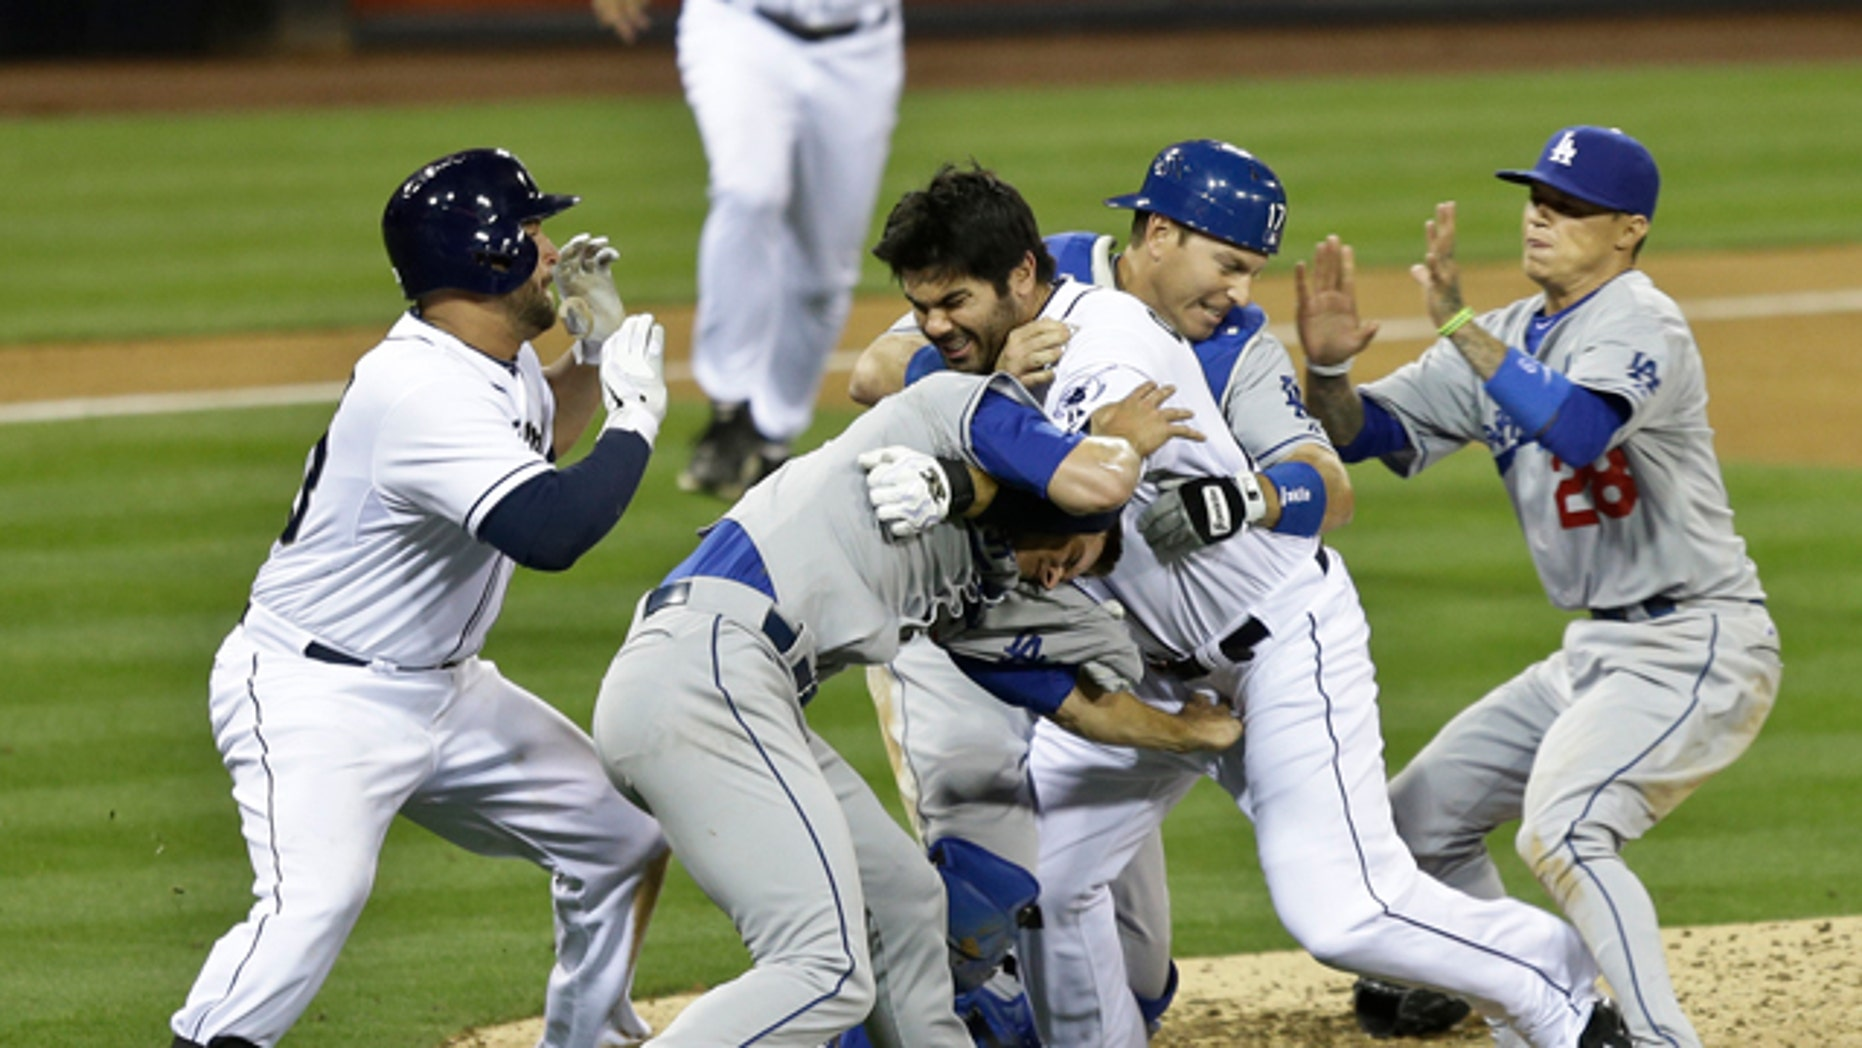 April 11, 2013: San Diego Padres' Carlos Quentin, center, and teammates battle the Los Angeles Dodgers after Quentin was hit by a pitch thrown by Angeles Dodgers pitcher Zack Greinke in the sixth inning of baseball game in San Diego.